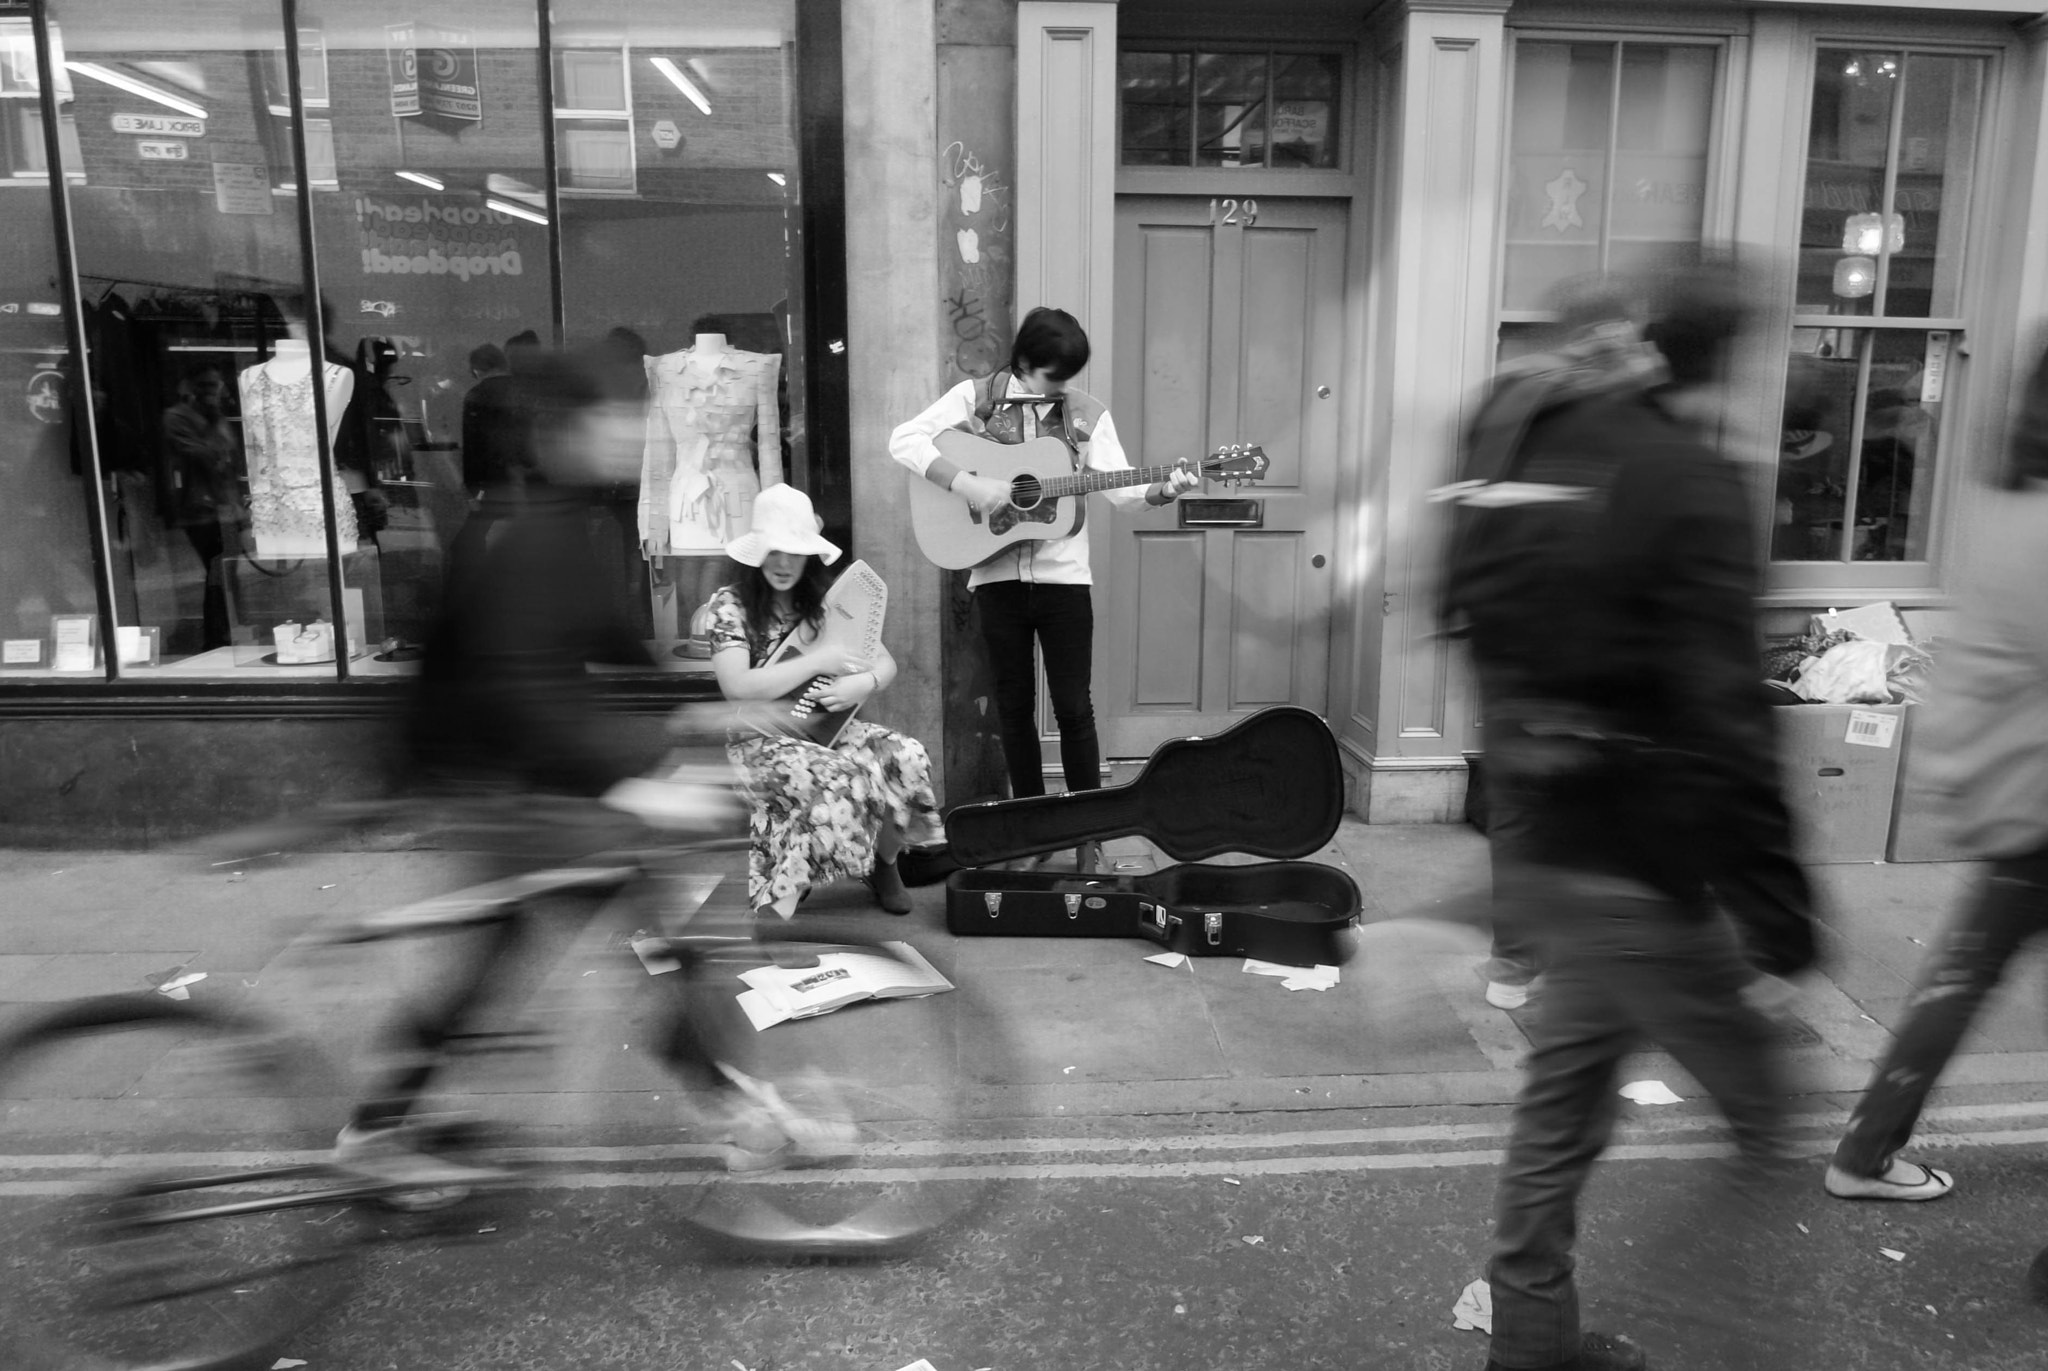 Photograph Brick Lane in music by Clement Lauchard on 500px